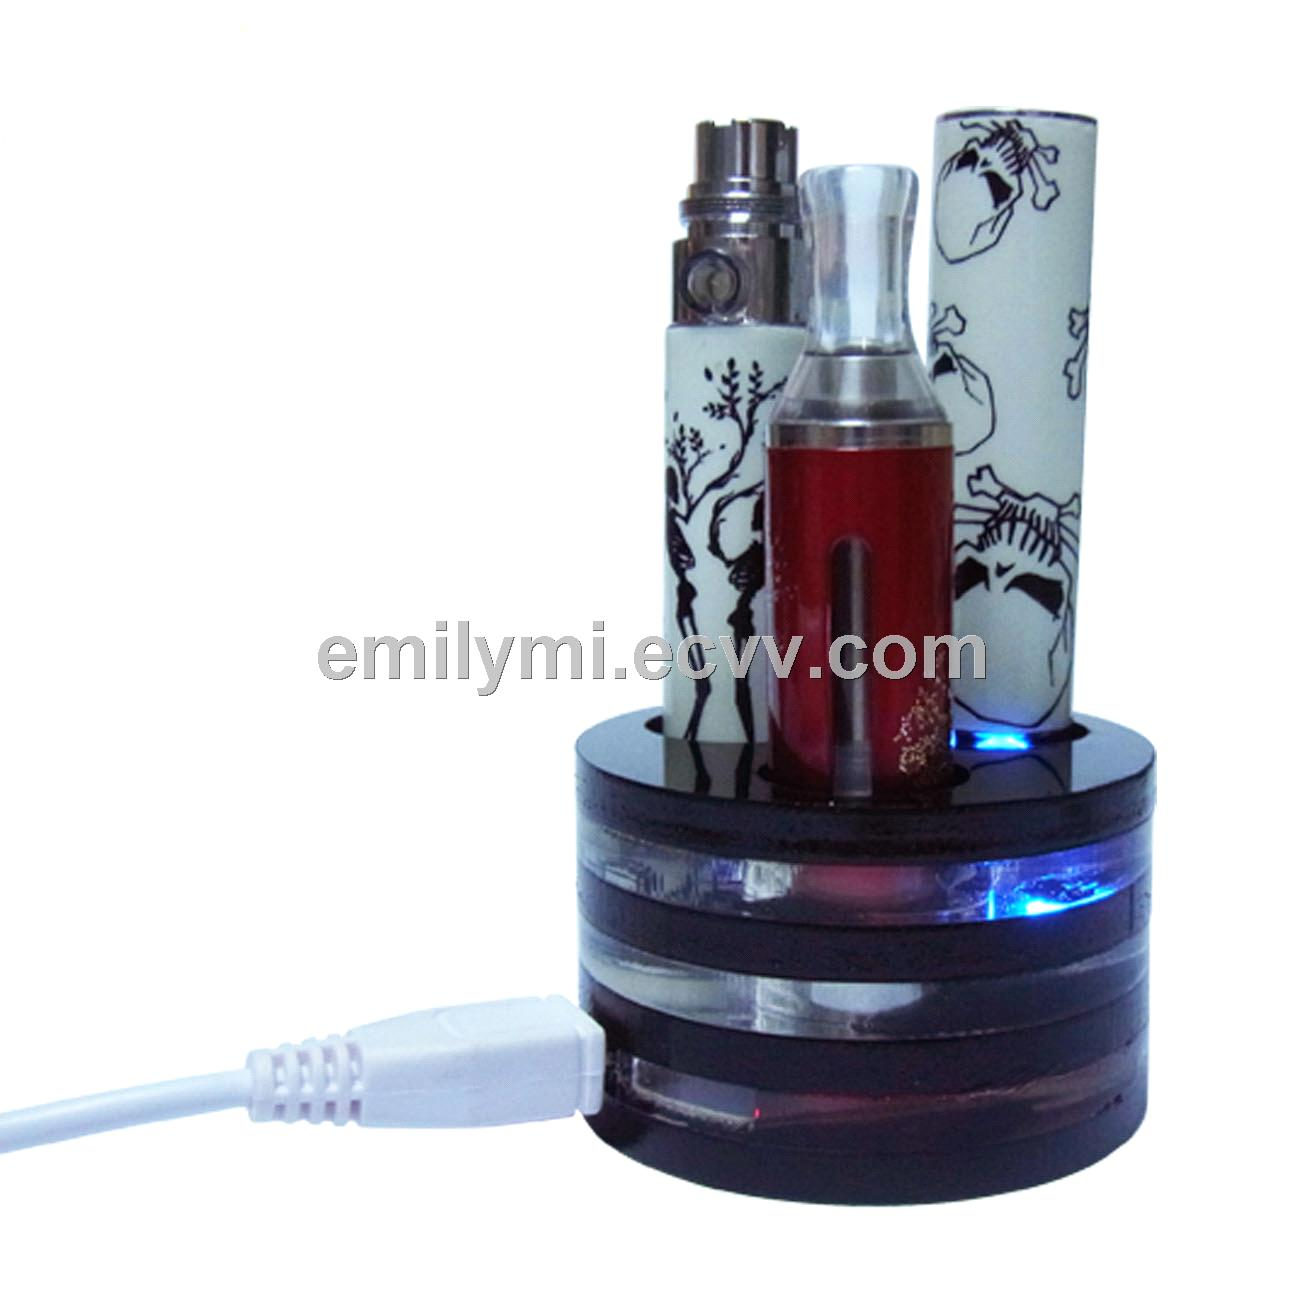 China 2014 new hot gift product vape tray charger, metal charger for ego ce4 e cigarette